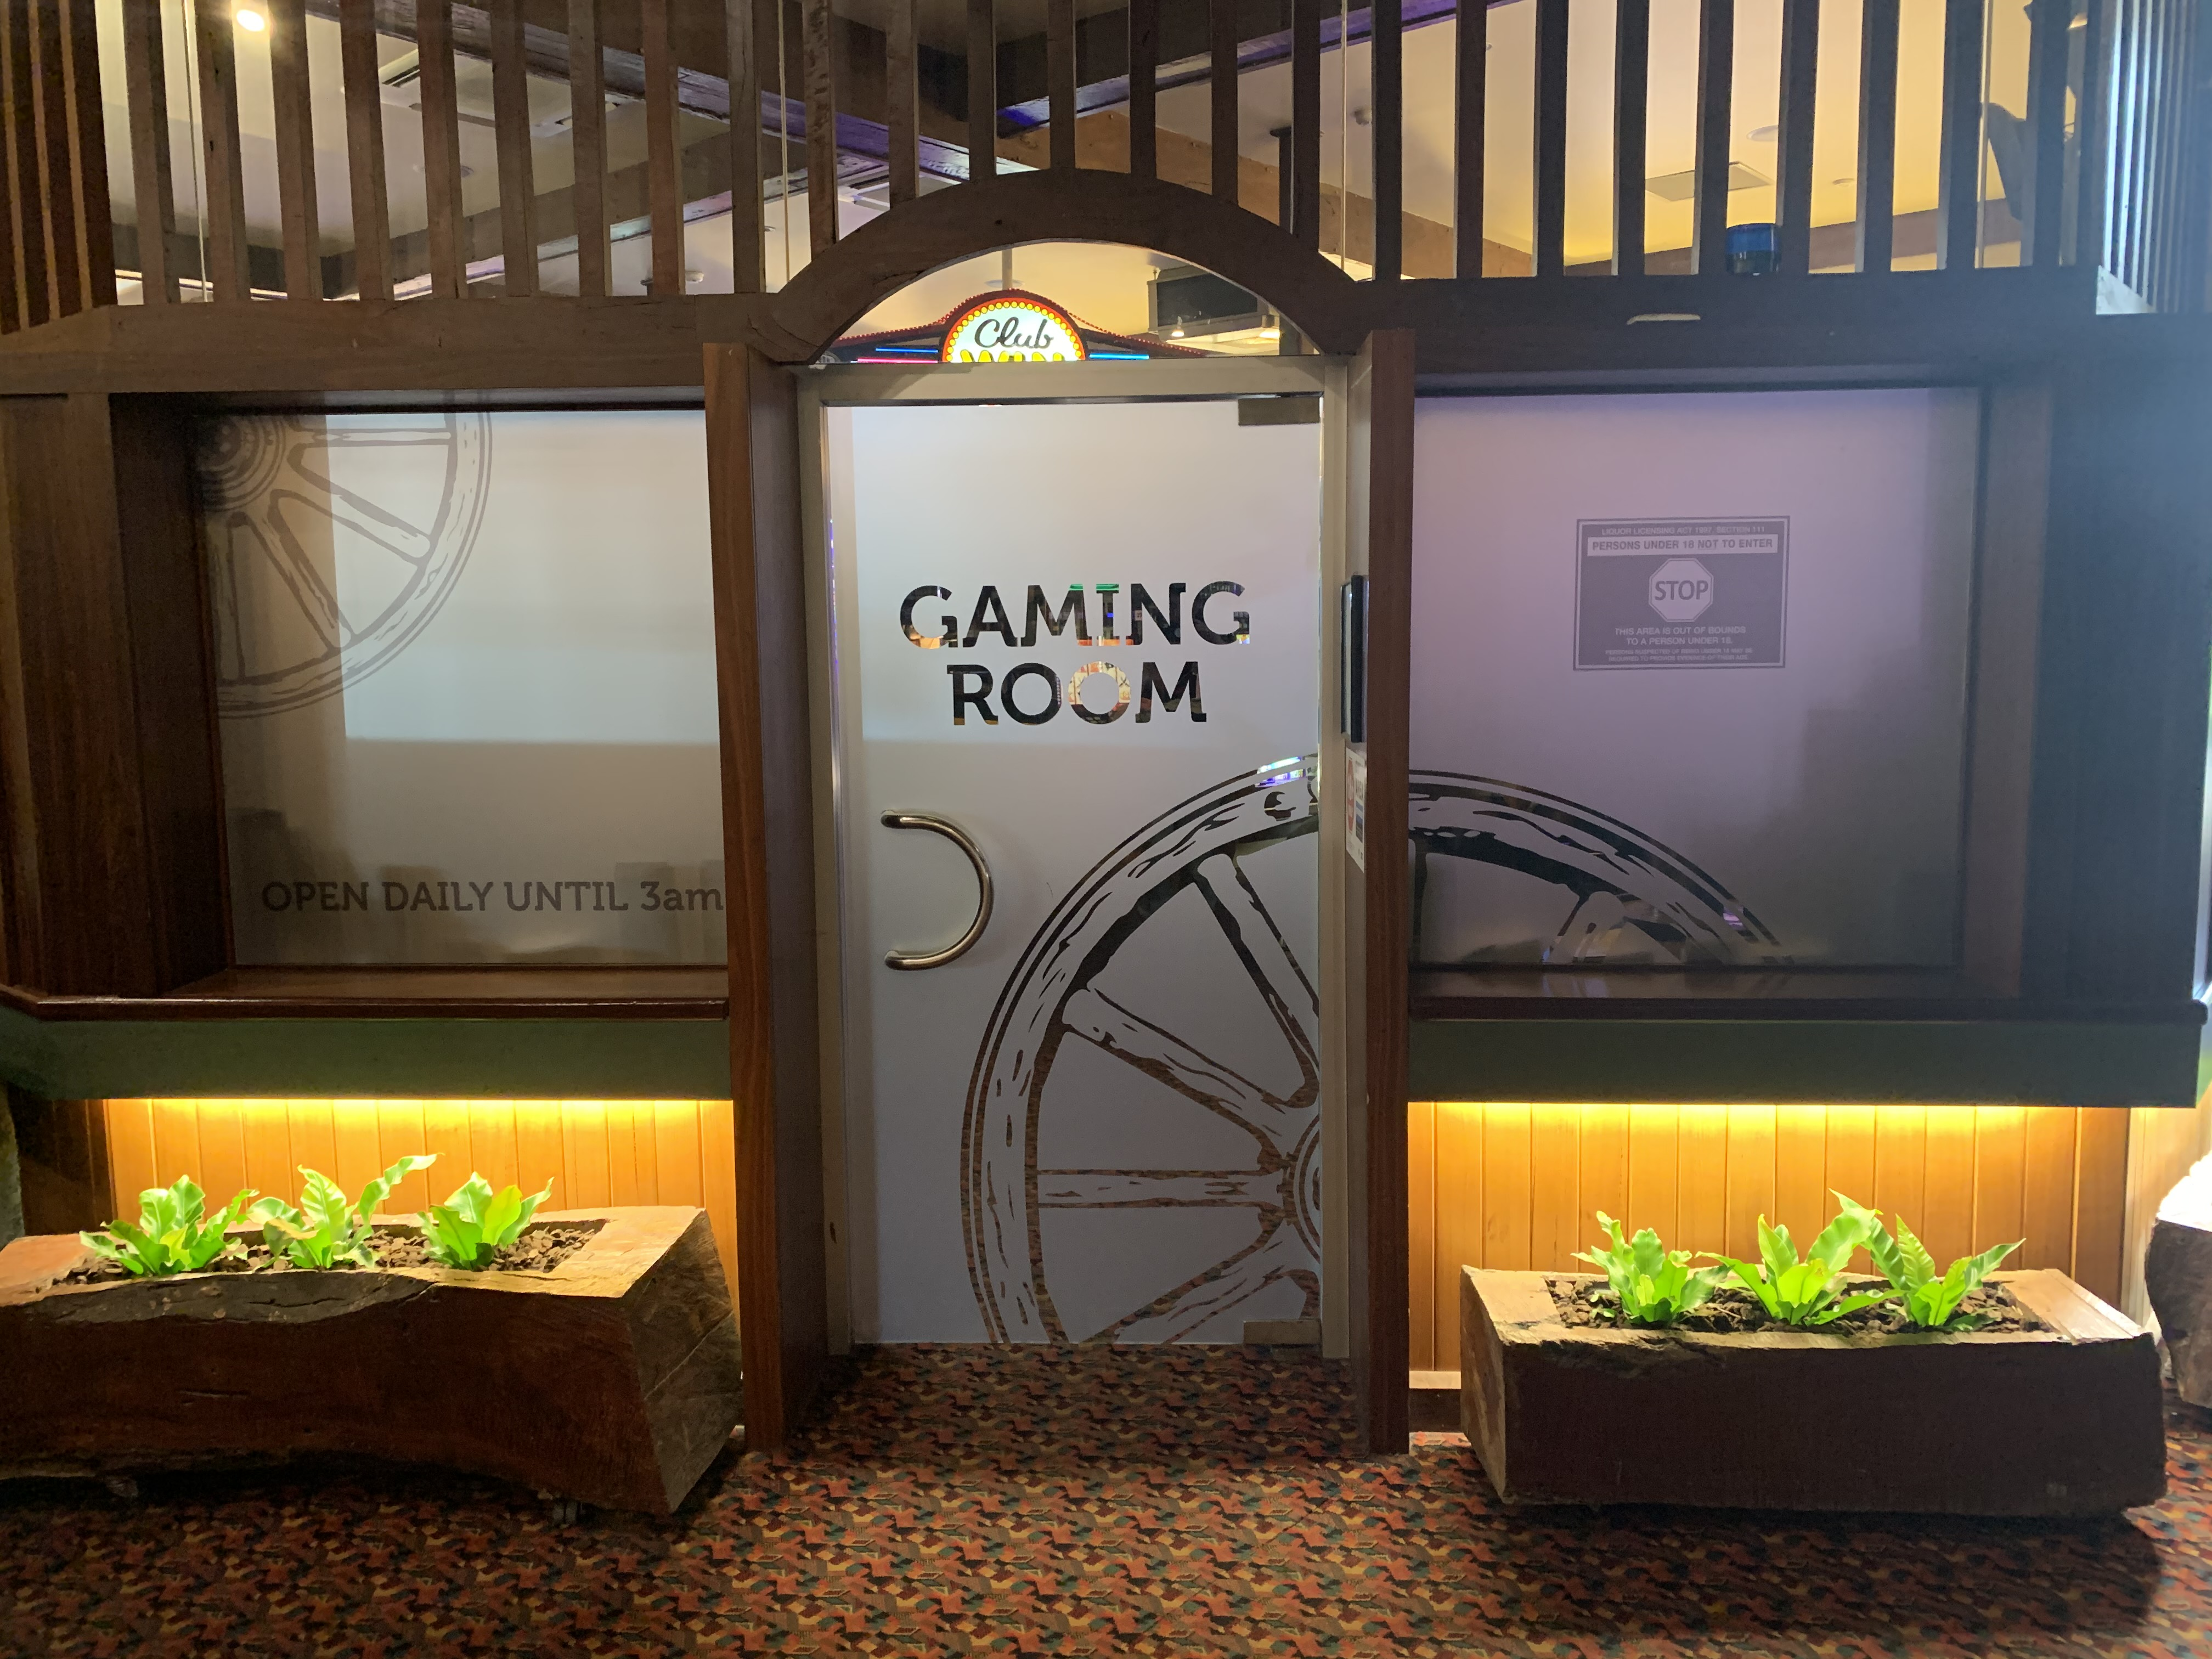 South Eastern Hotel Gaming Room Frosting